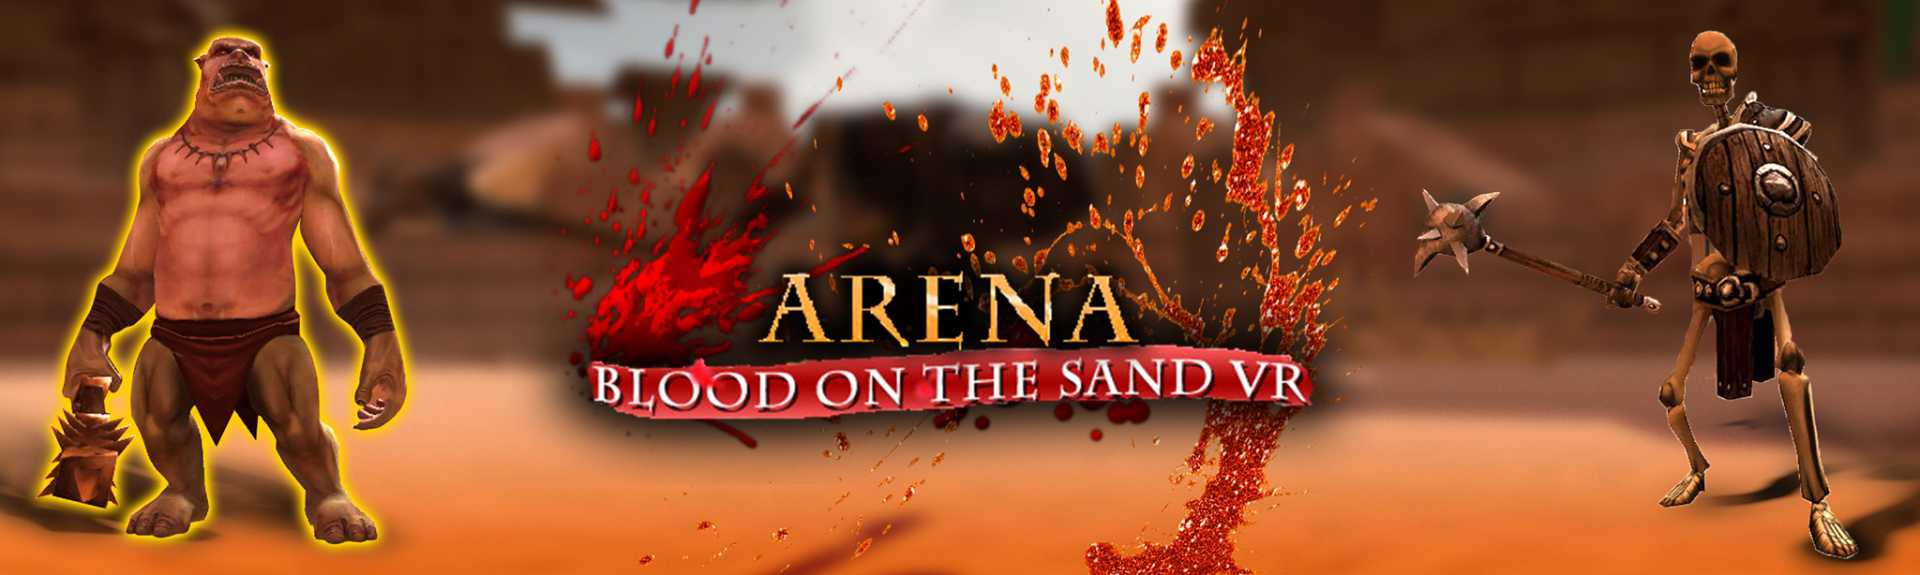 Arena Blood On the Sand